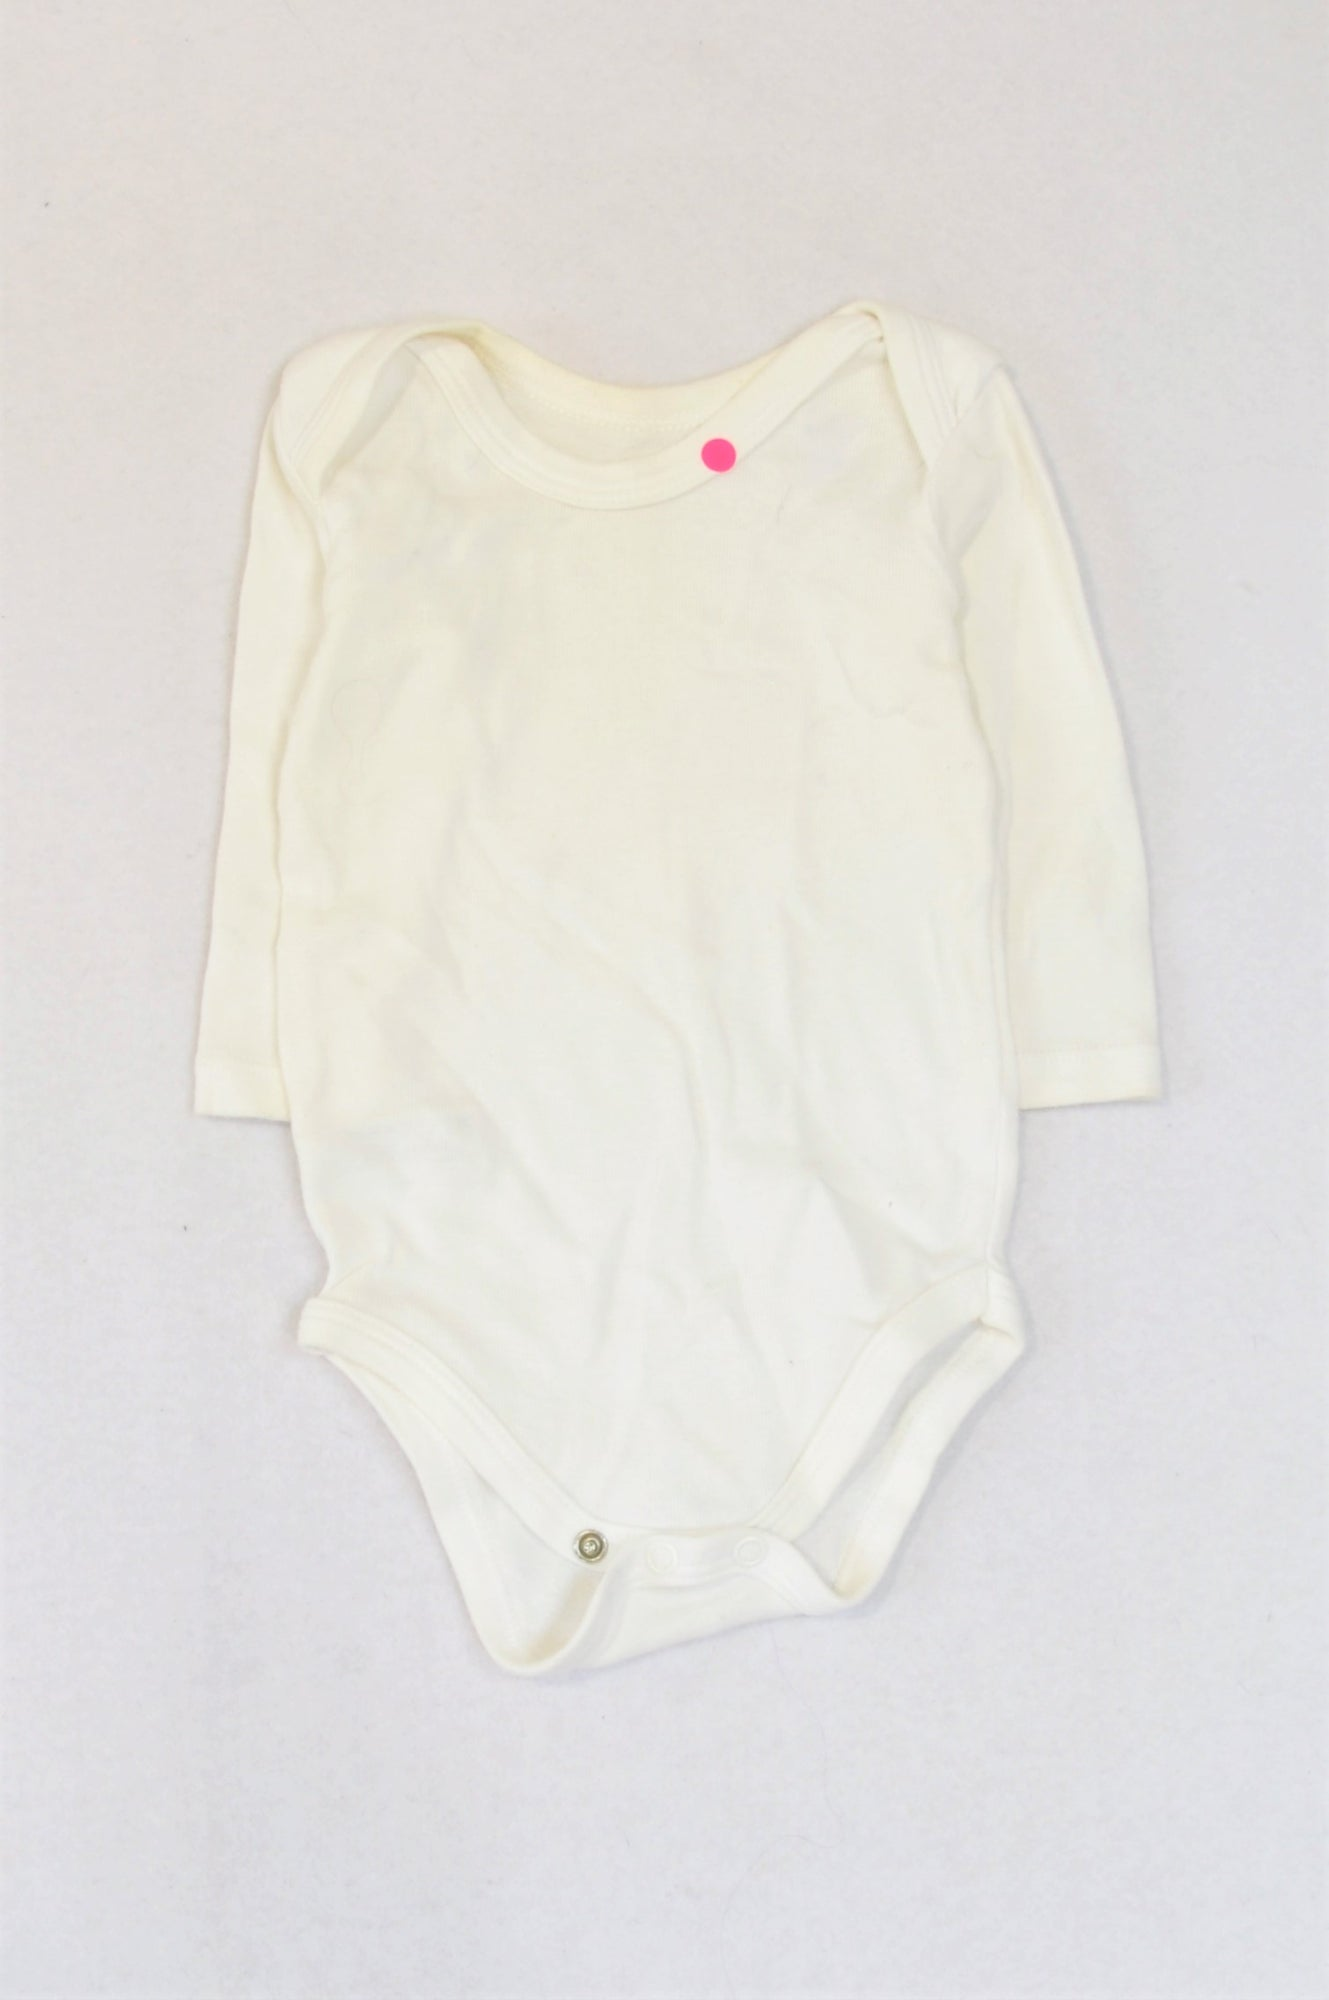 Woolworths Basic White Long Sleeve Baby Grow Unisex 3-6 months